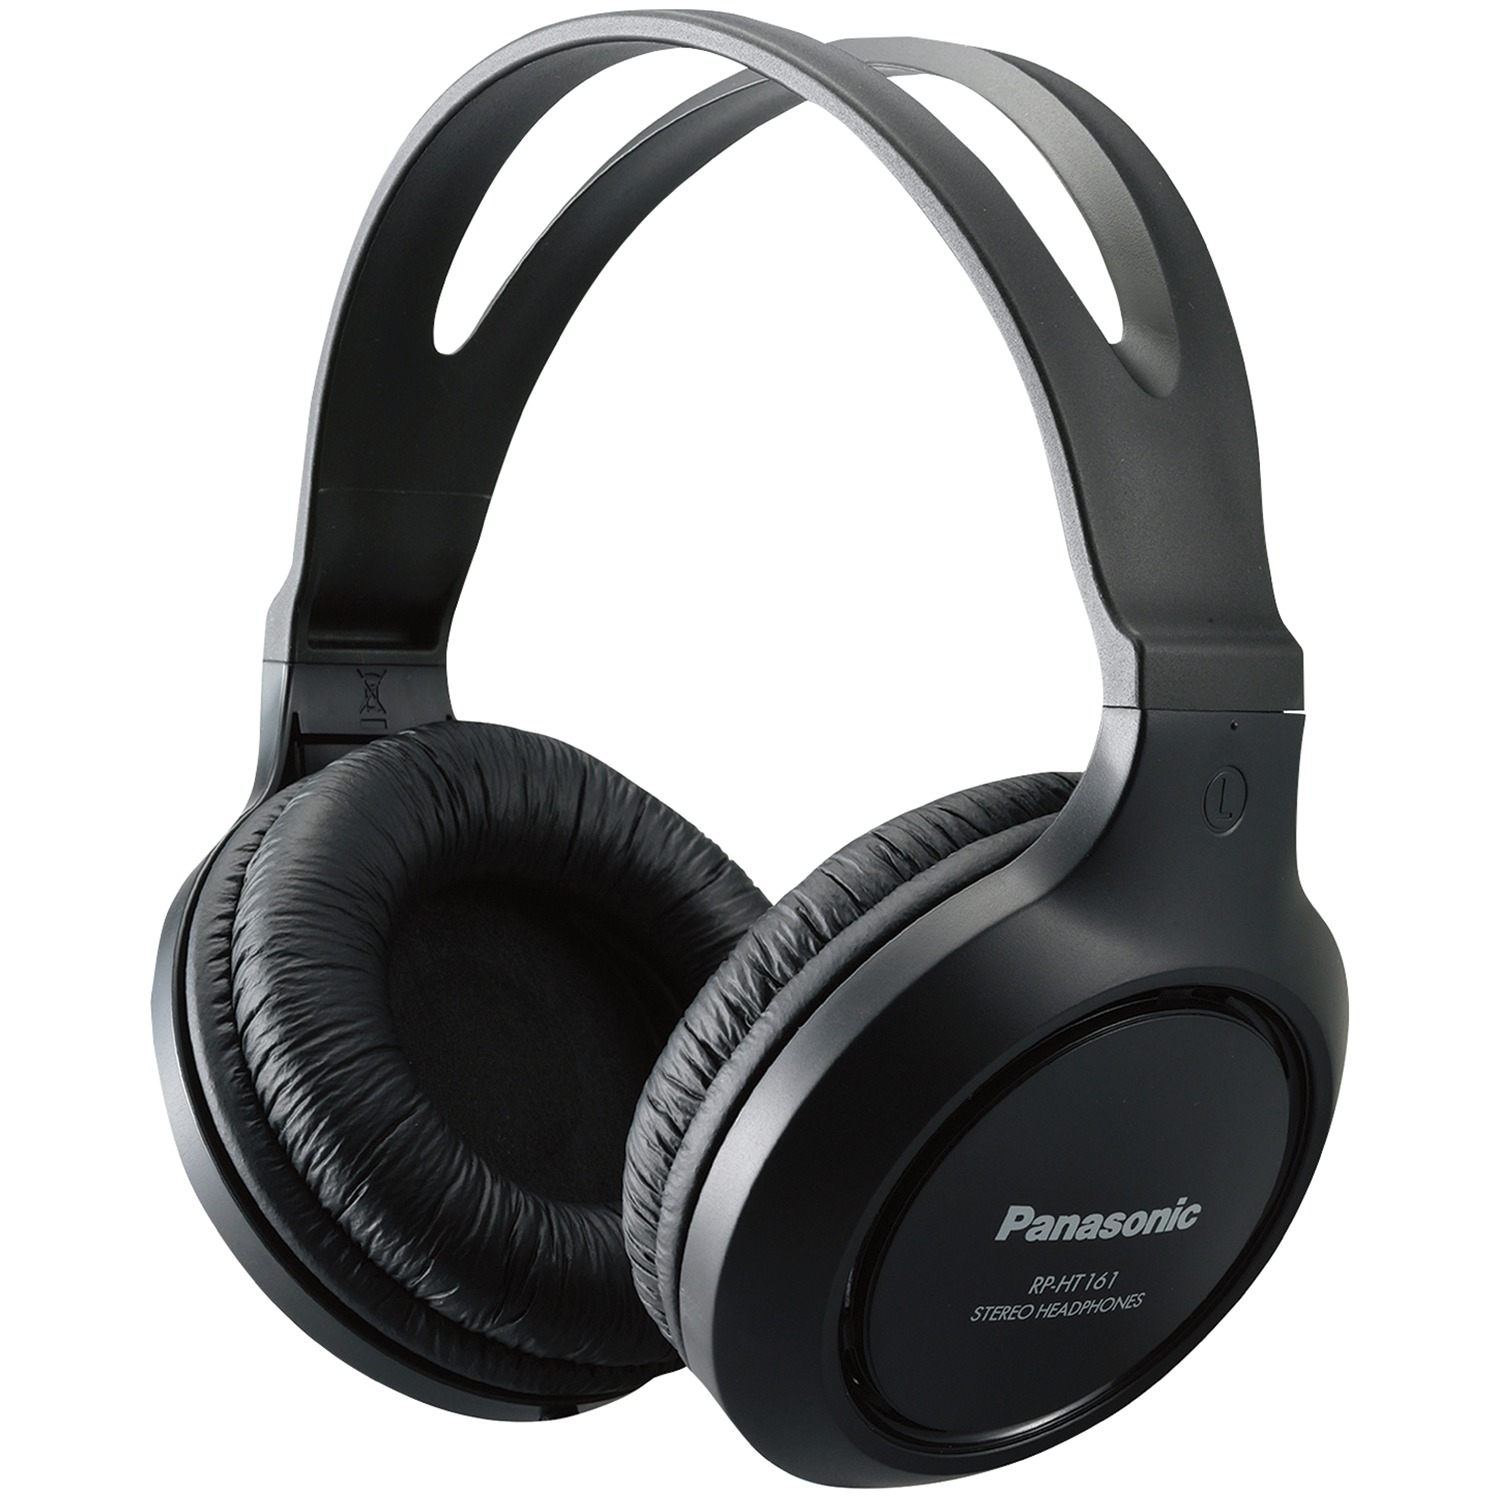 Panasonic RP-HT161-K Full Size Over-Ear Wired Long-Cord Headphones